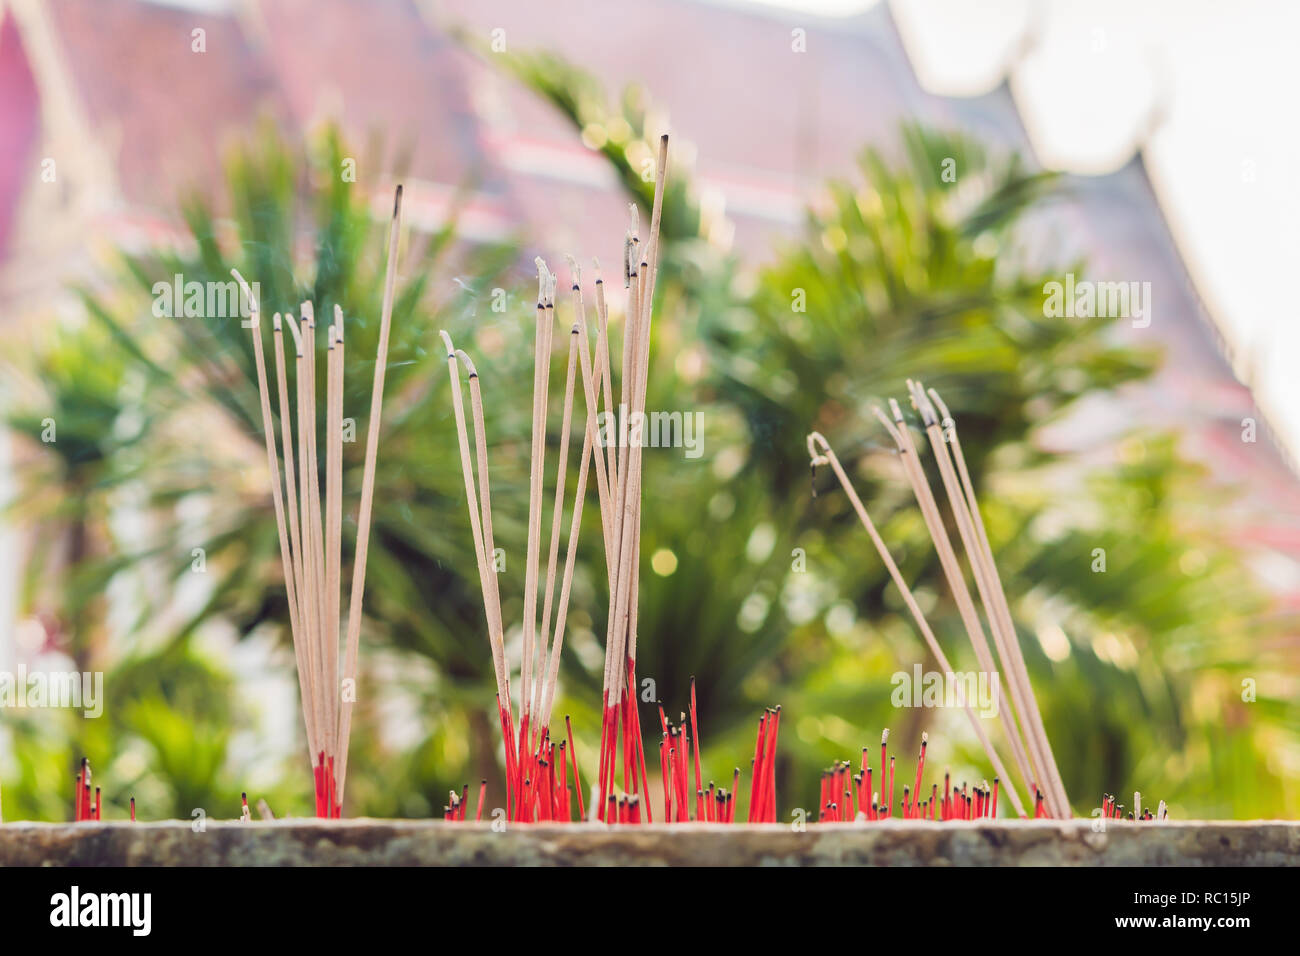 Smell the smoke of Incense, The smoke of joss stick in temple, smoke